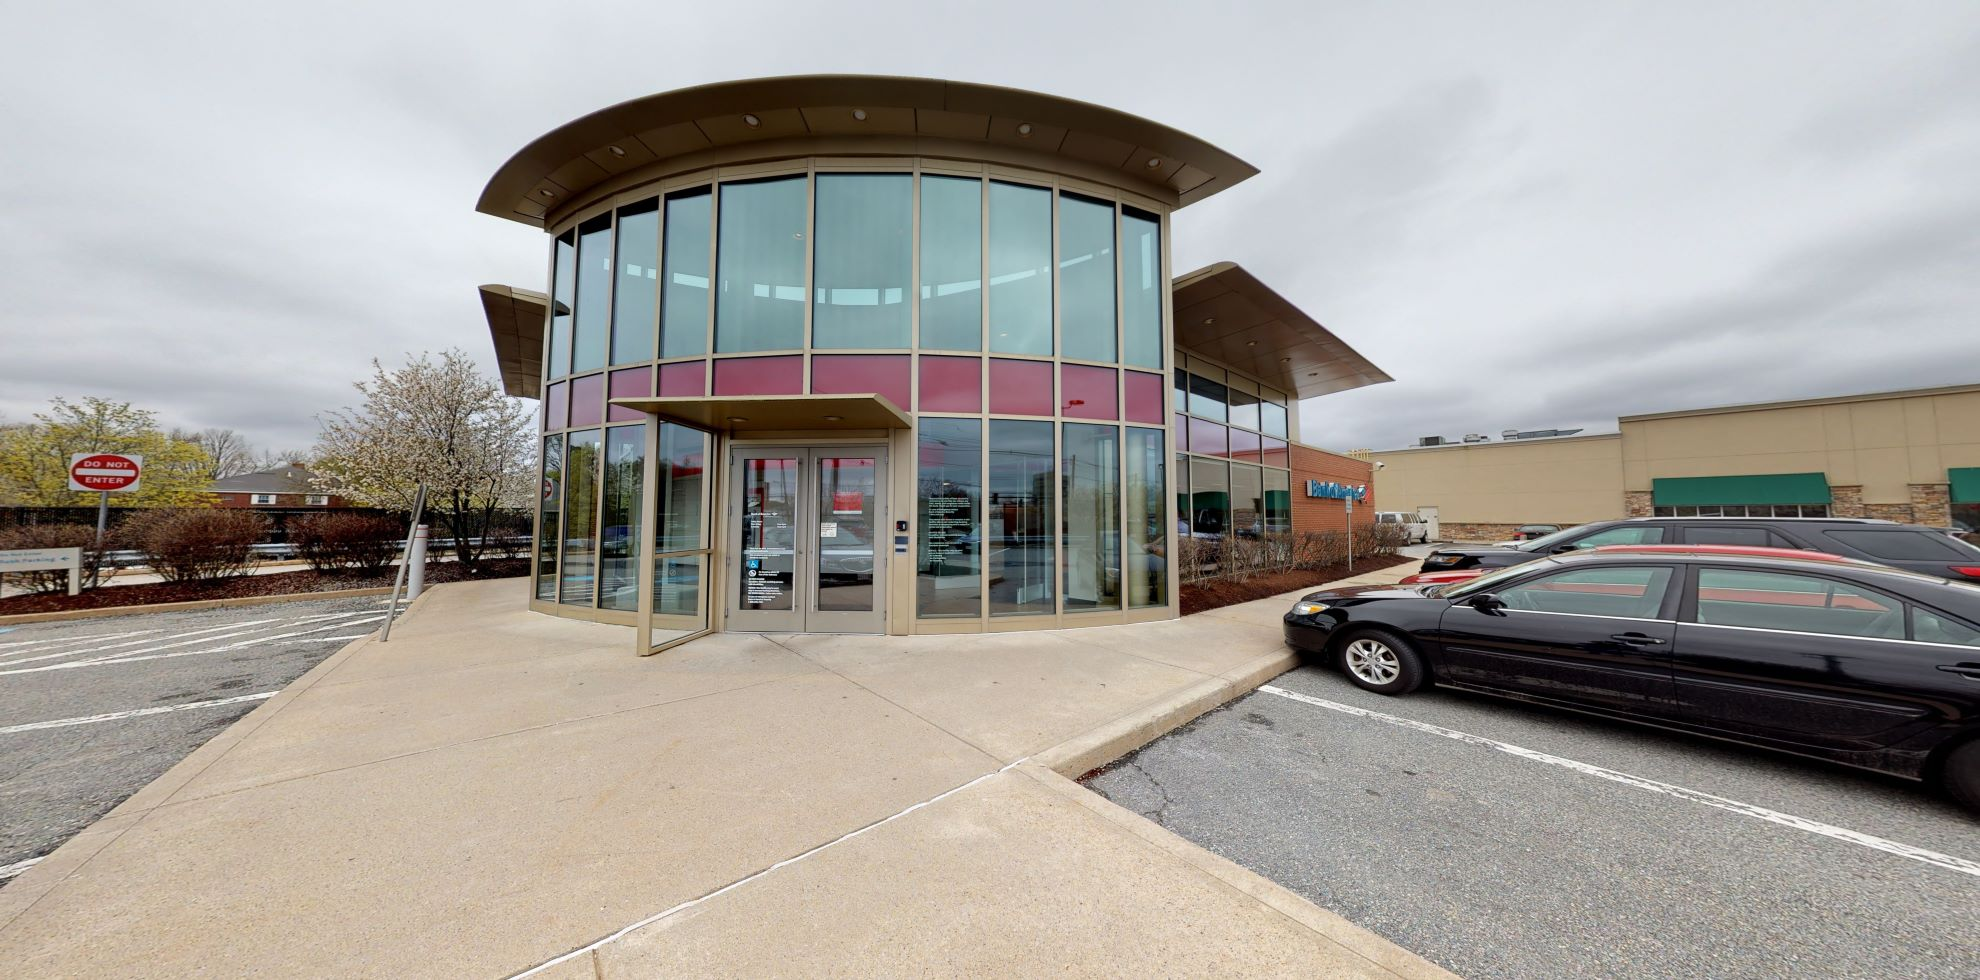 Bank of America financial center with drive-thru ATM | 20 Walkers Brook Dr, Reading, MA 01867